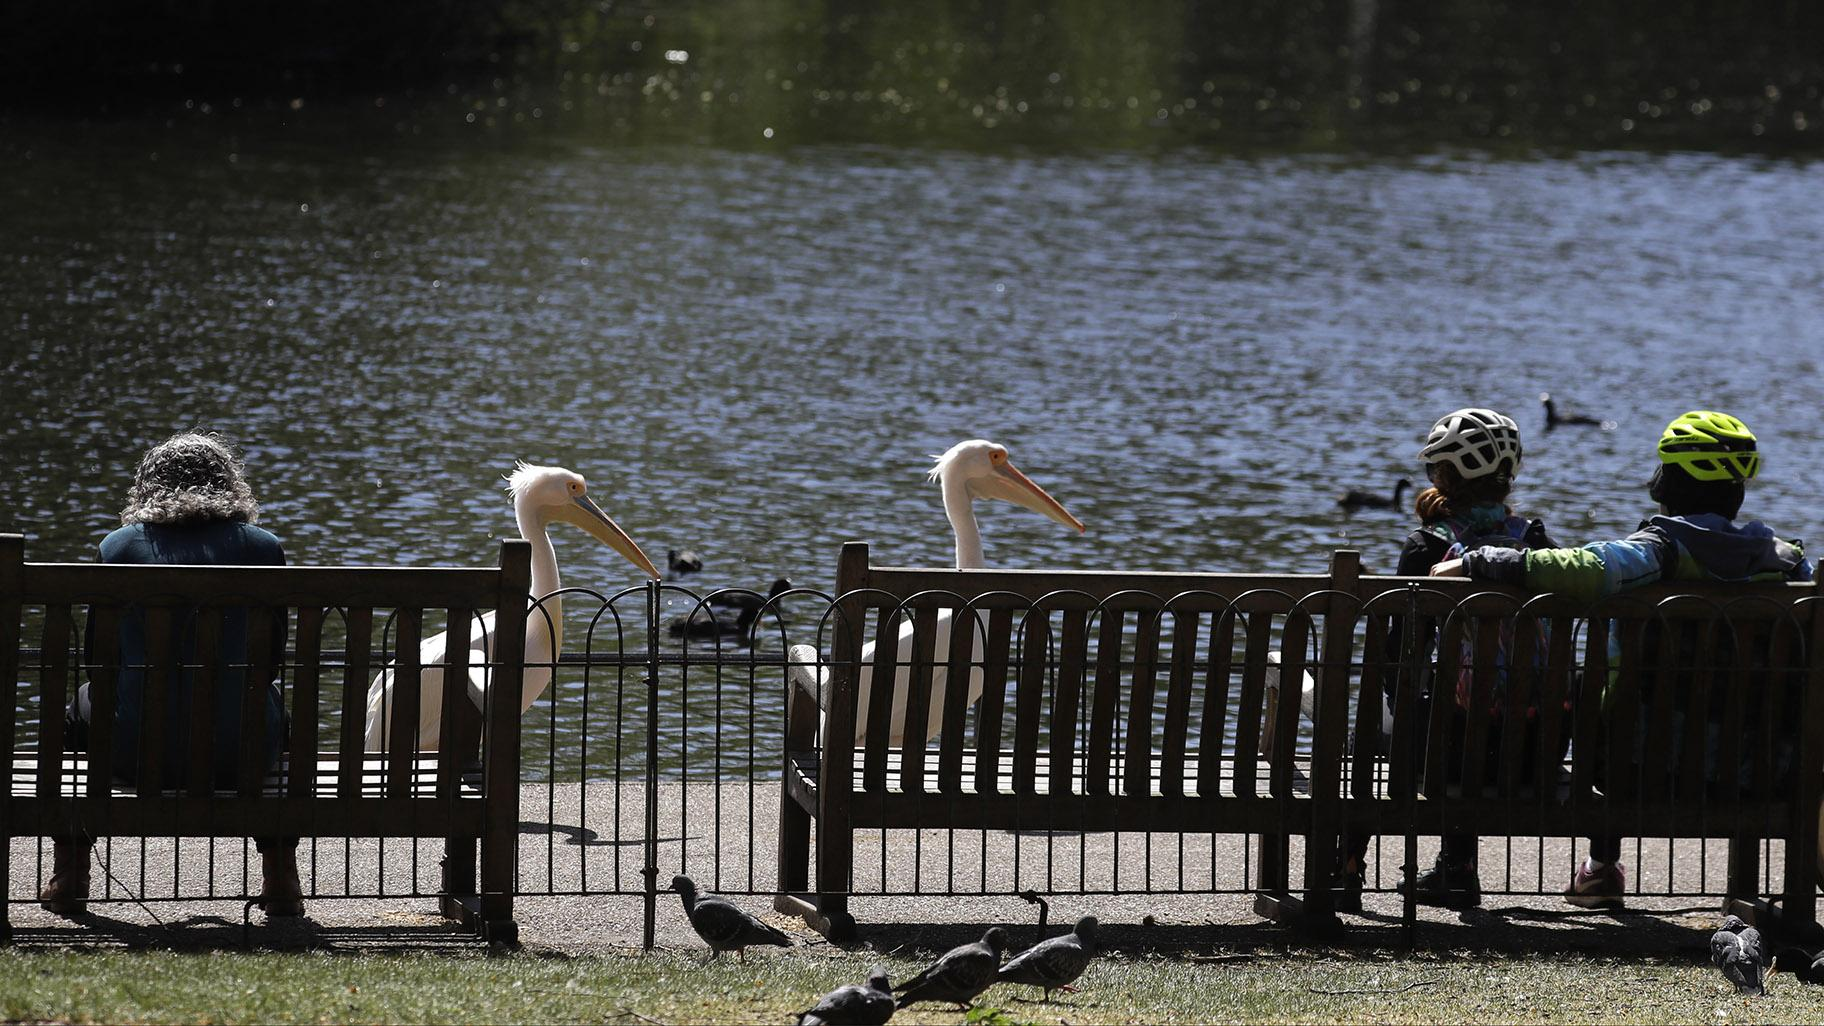 People sit on benches obeying the social distancing in St James's Park in London, as the country continues in lockdown to help curb the spread of the coronavirus, Sunday, April 19, 2020. (AP Photo / Kirsty Wigglesworth)